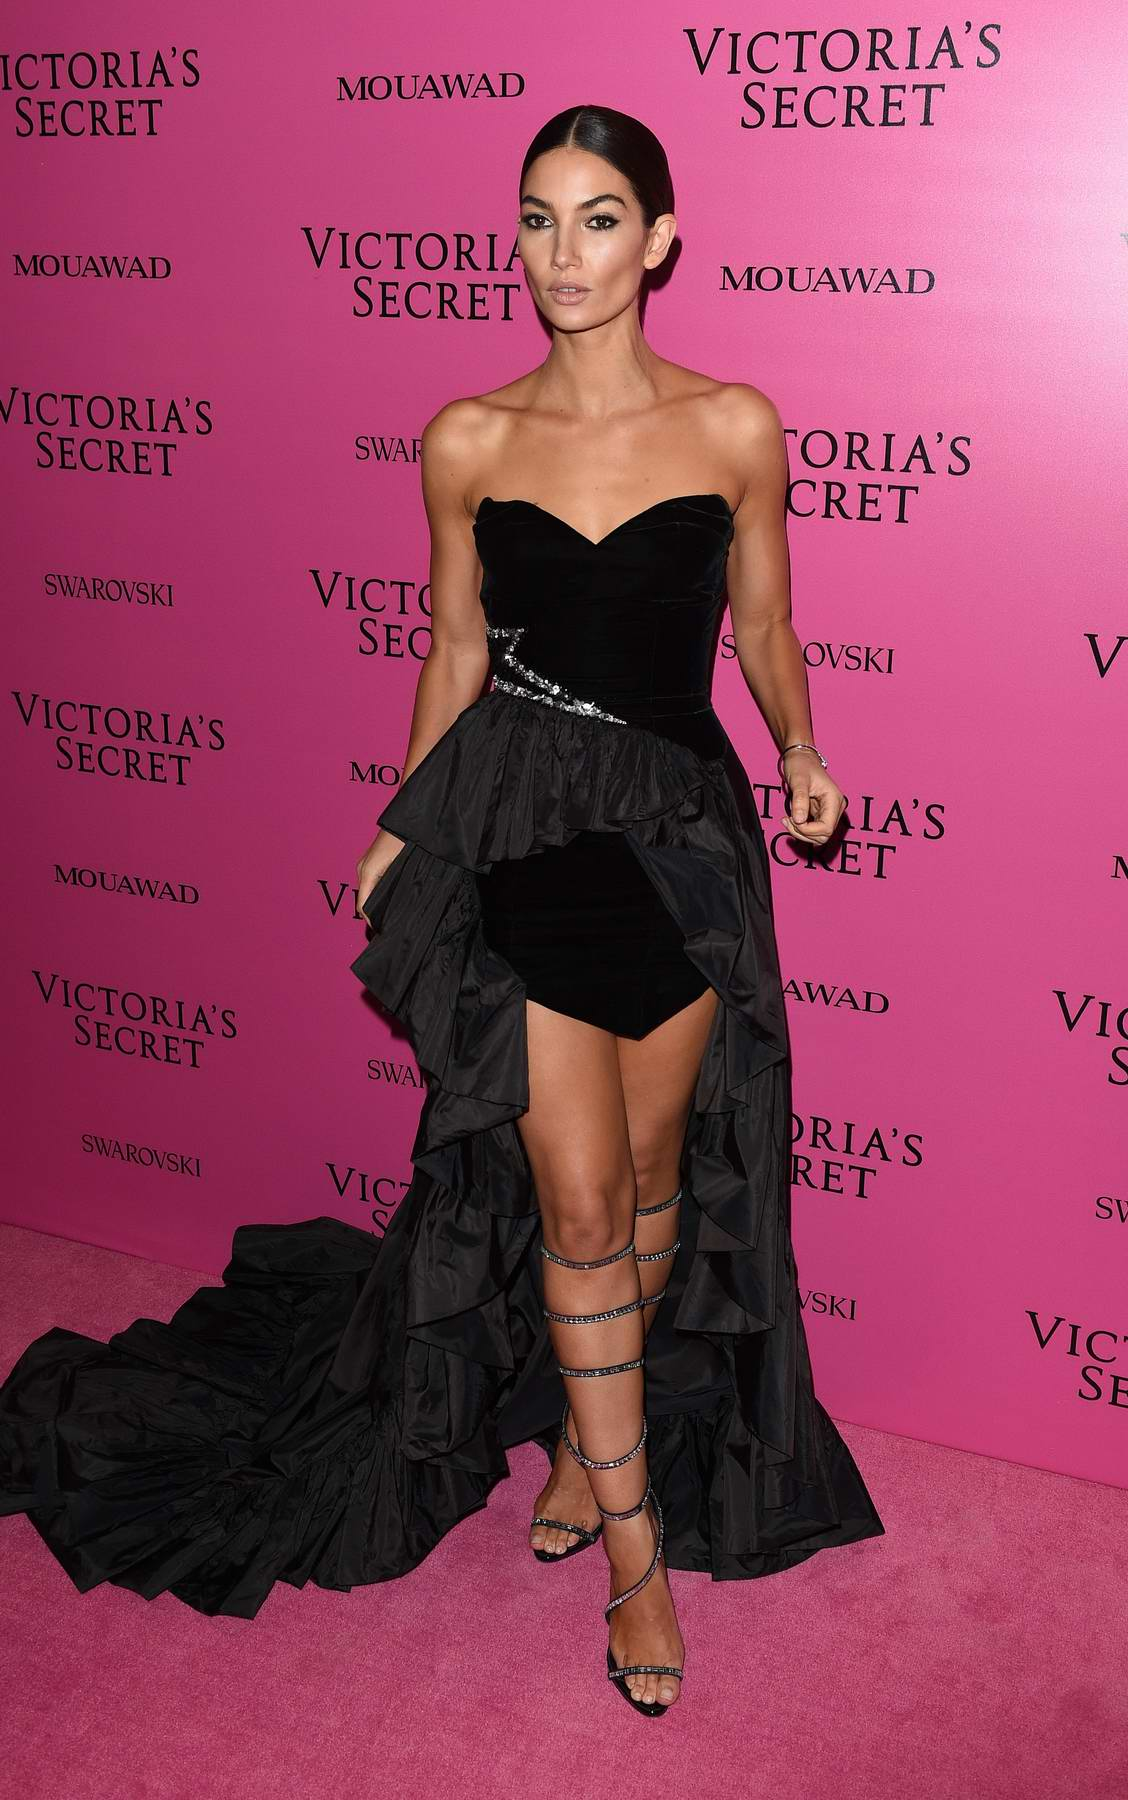 Lily Aldridge at the Victoria's Secret fashion show, pink carpet and after party at Expo Center in Shanghai, China